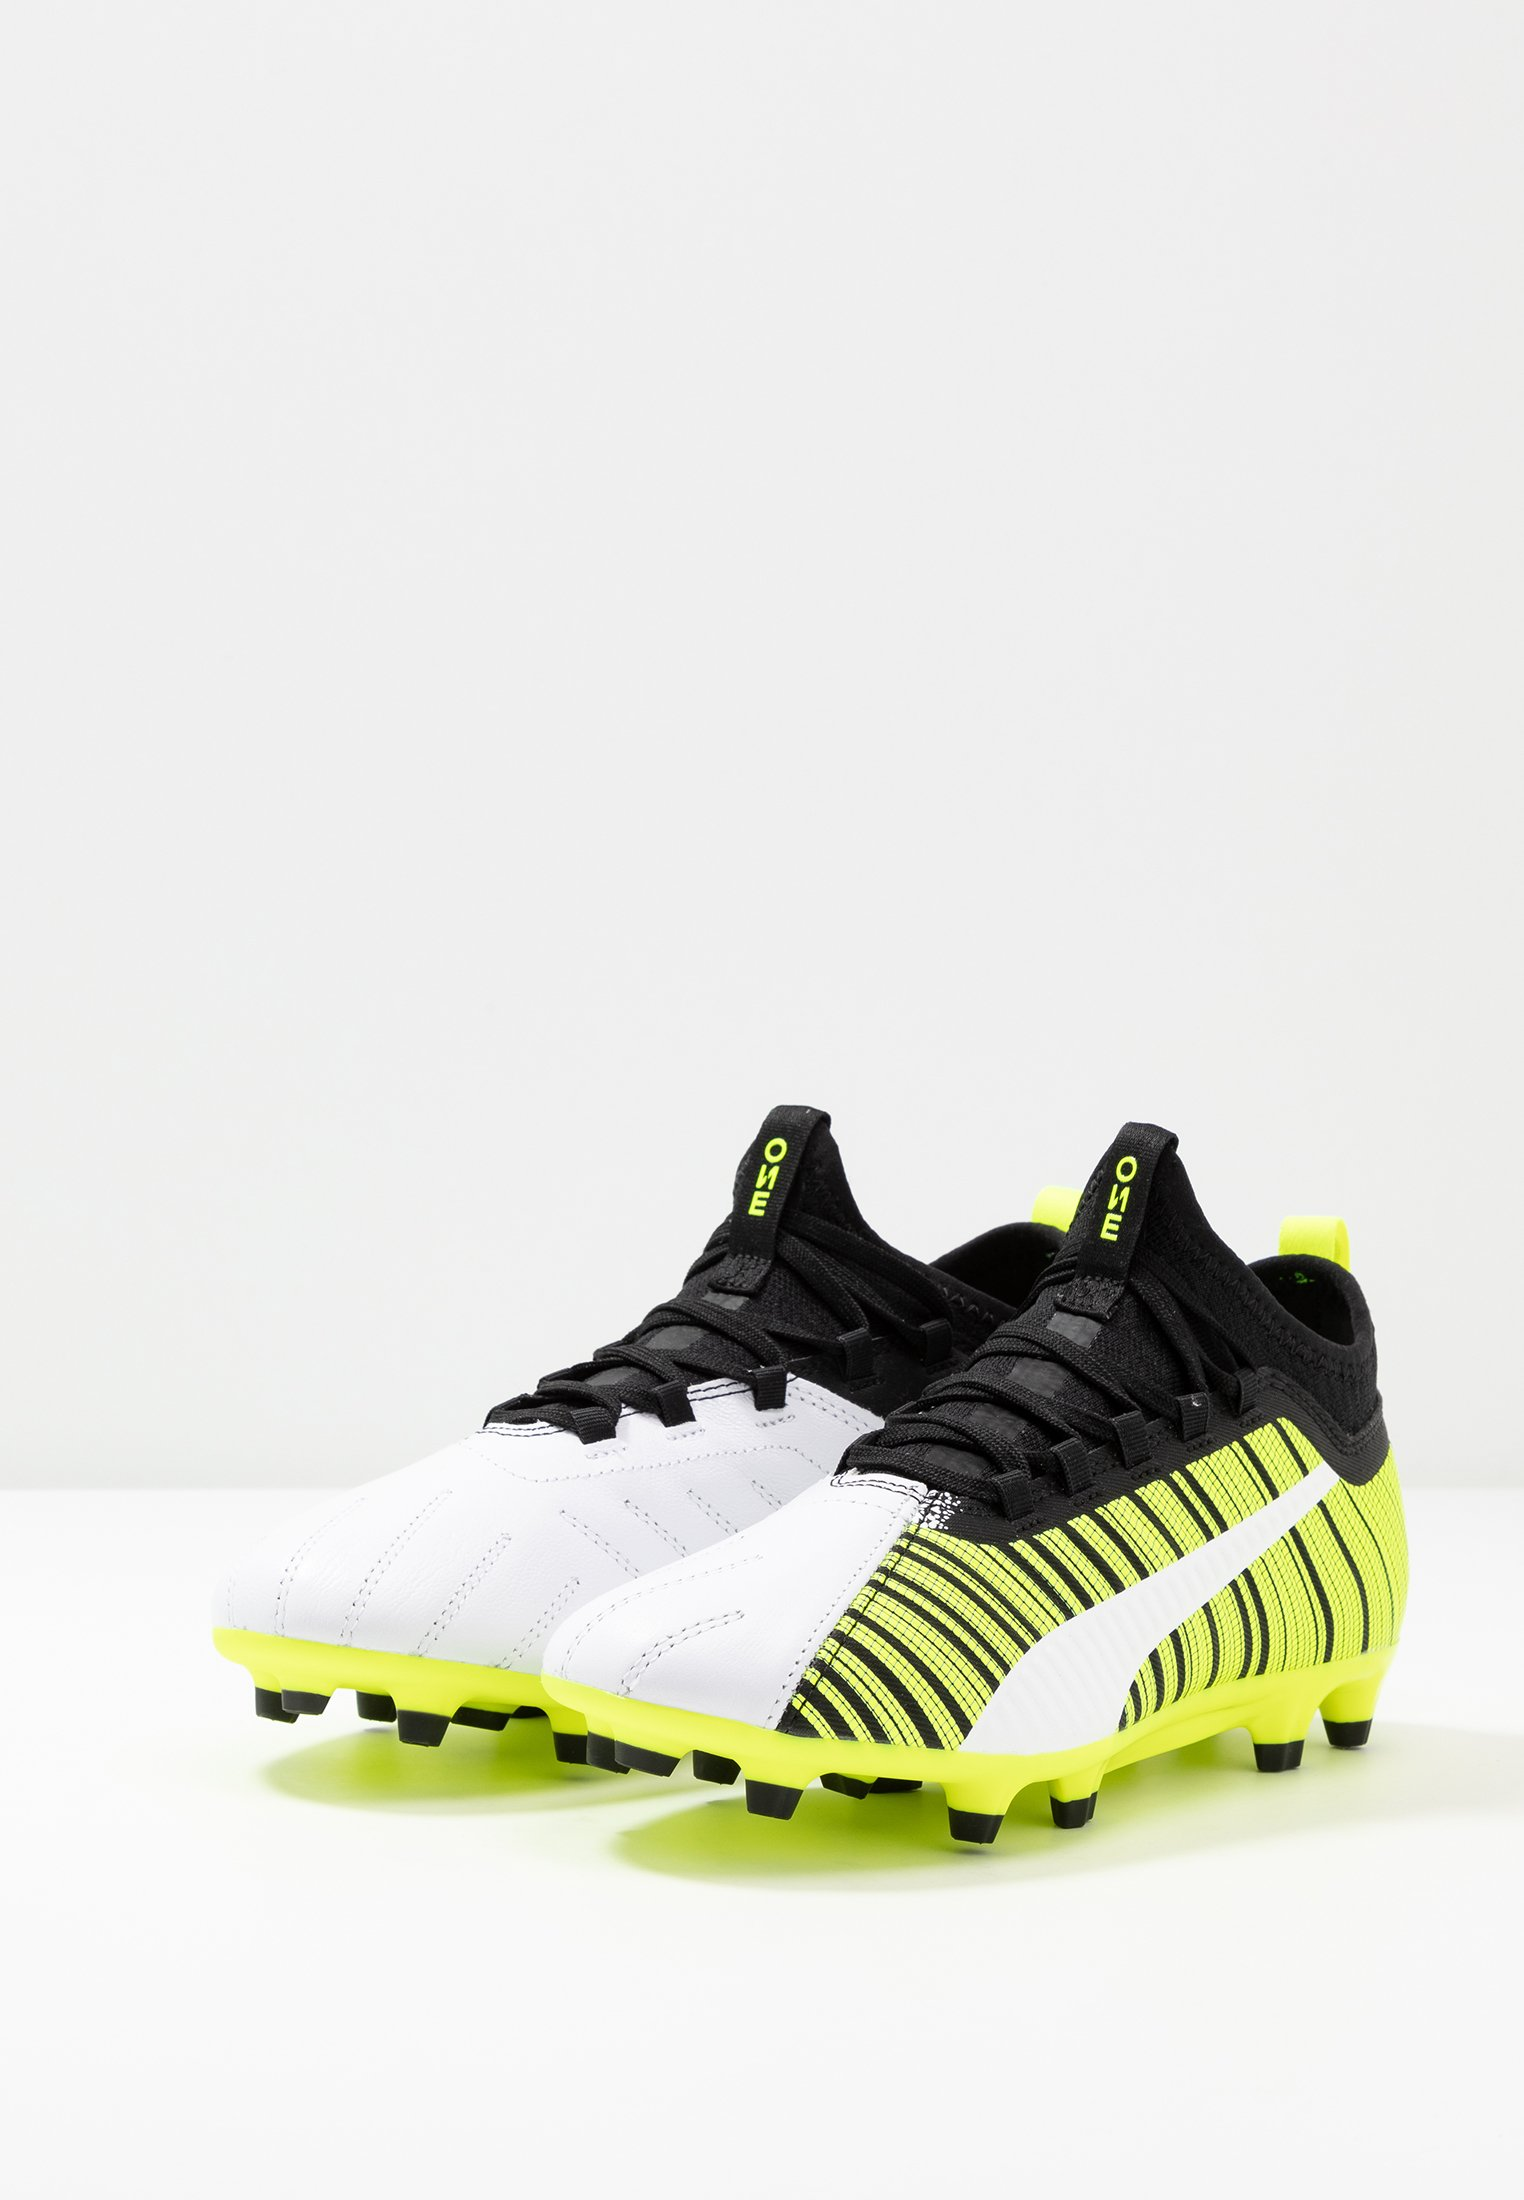 5 Da Con Fg agScarpe Alert Puma White One yellow Calcetto black 3 Tacchetti F31TKclJ